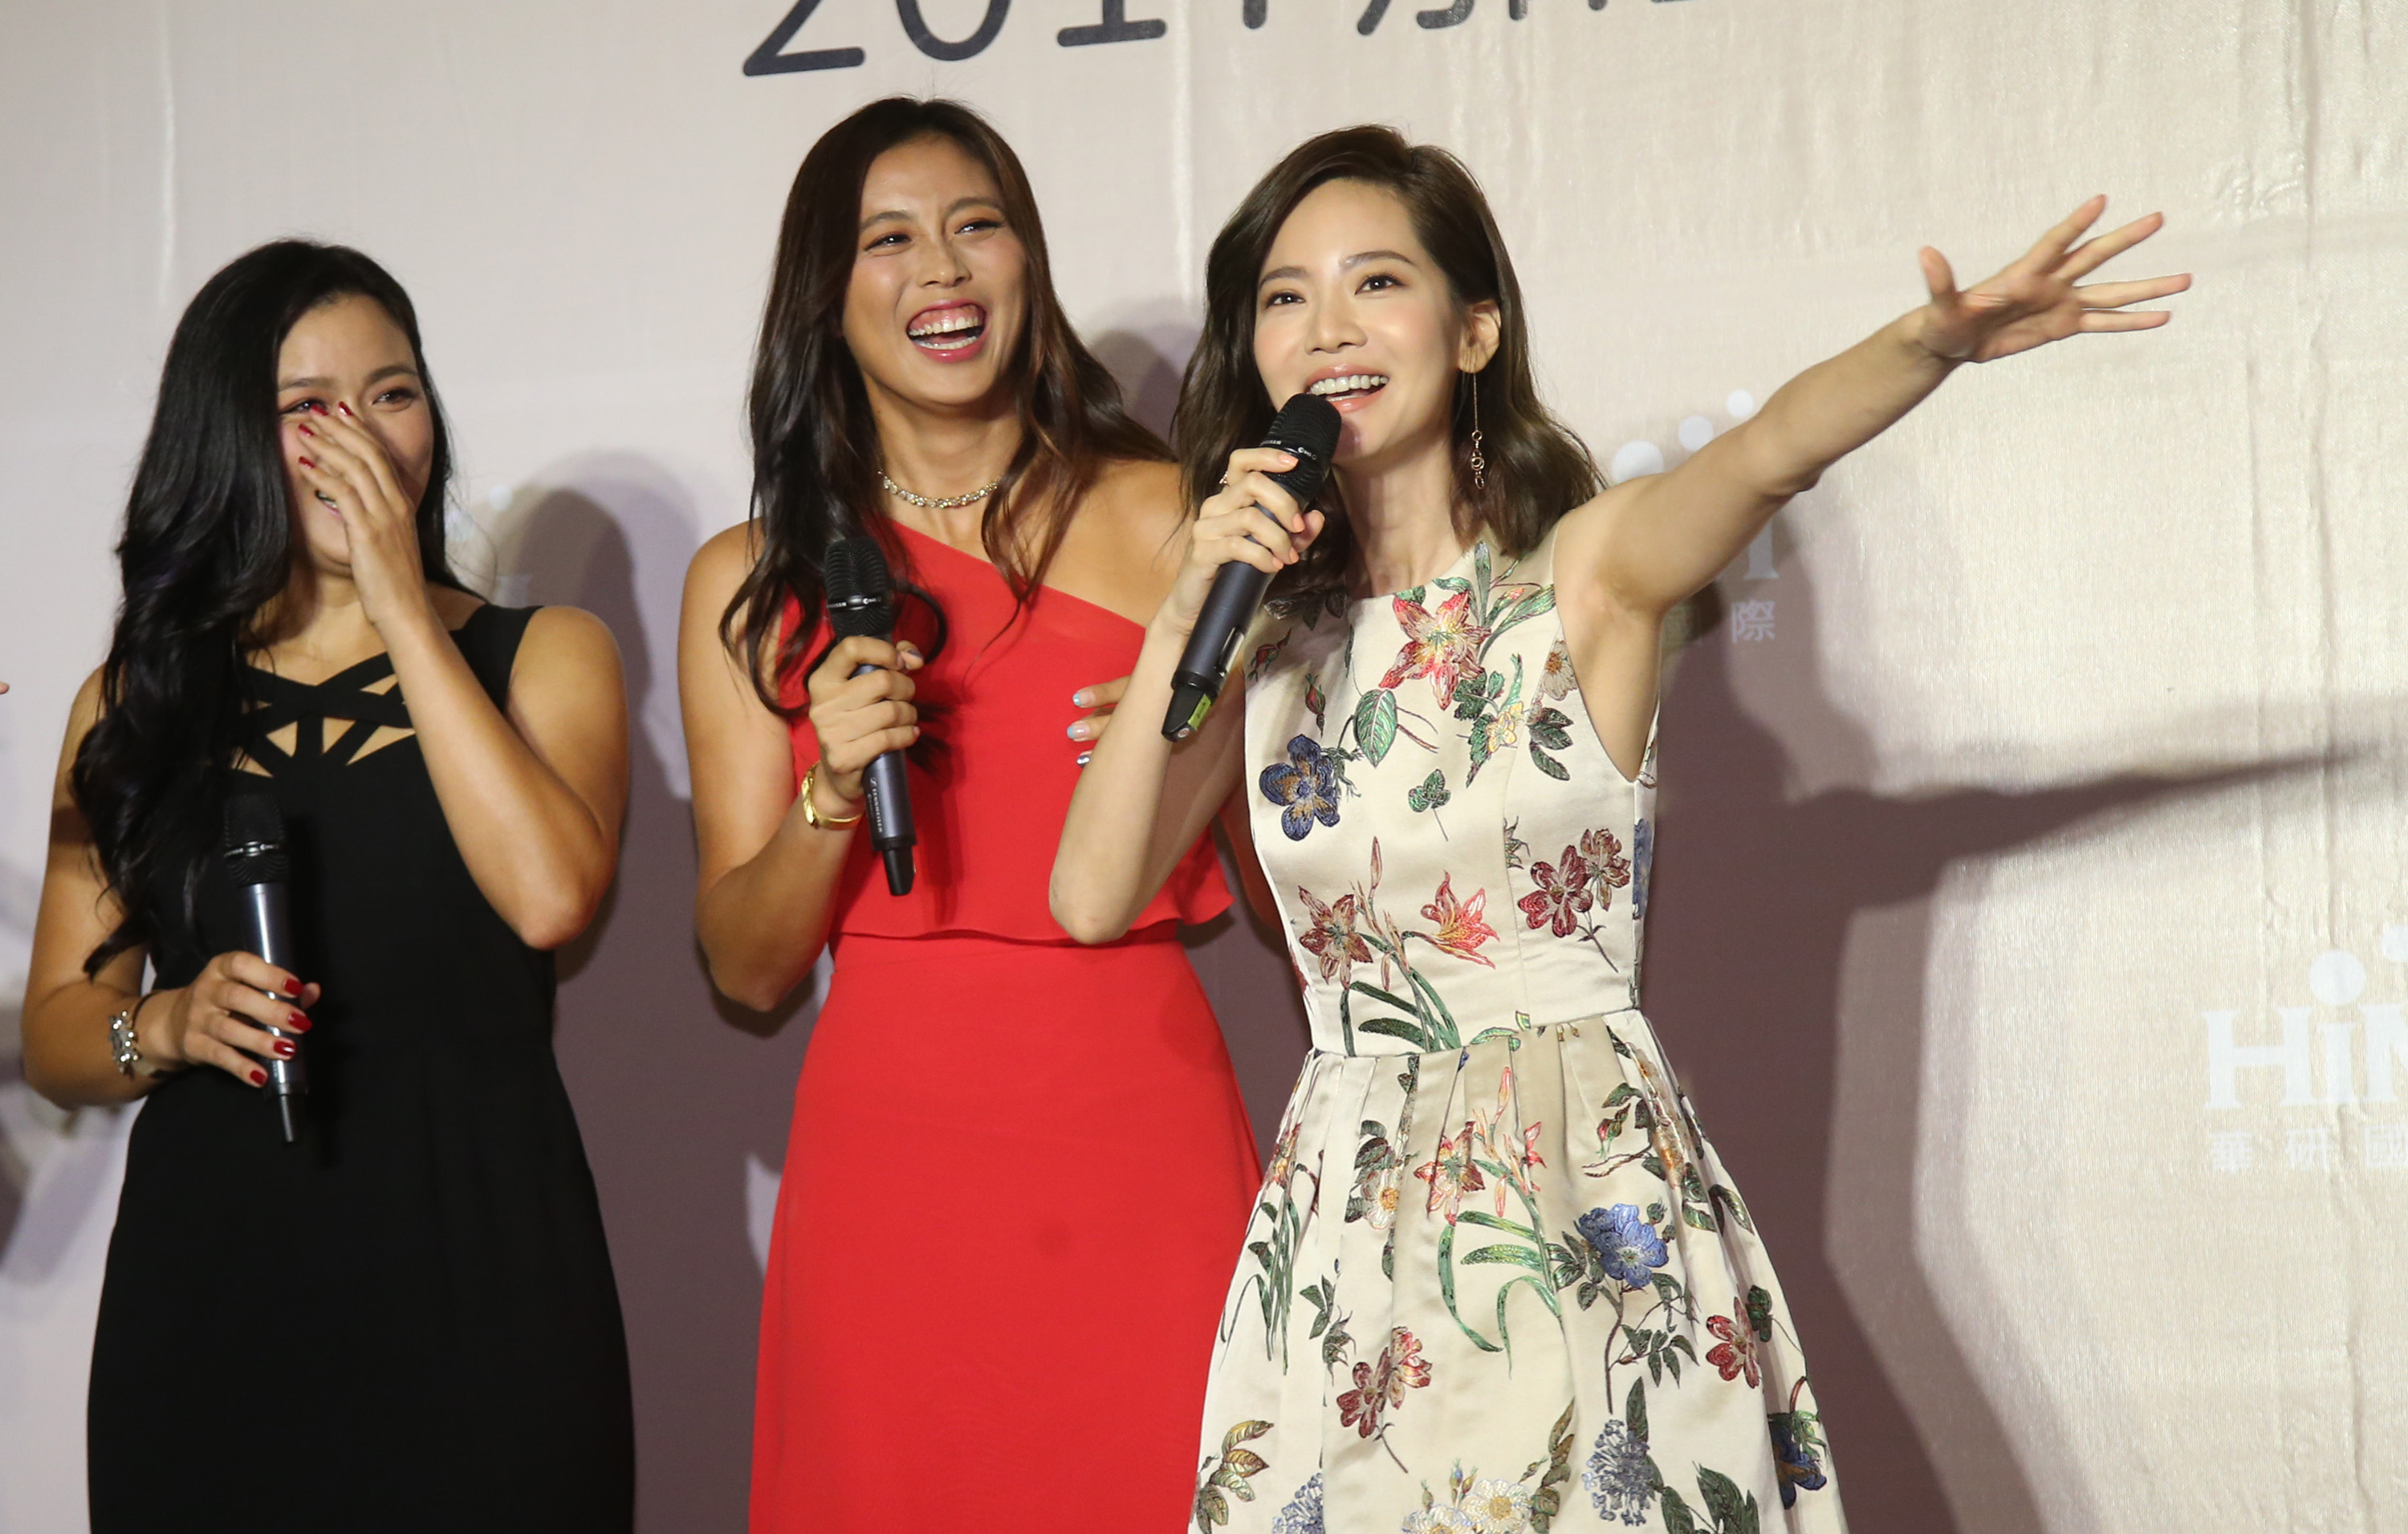 Chan Yung-jan and Chan Hao-ching with host Joanne Tseng (from left to right).